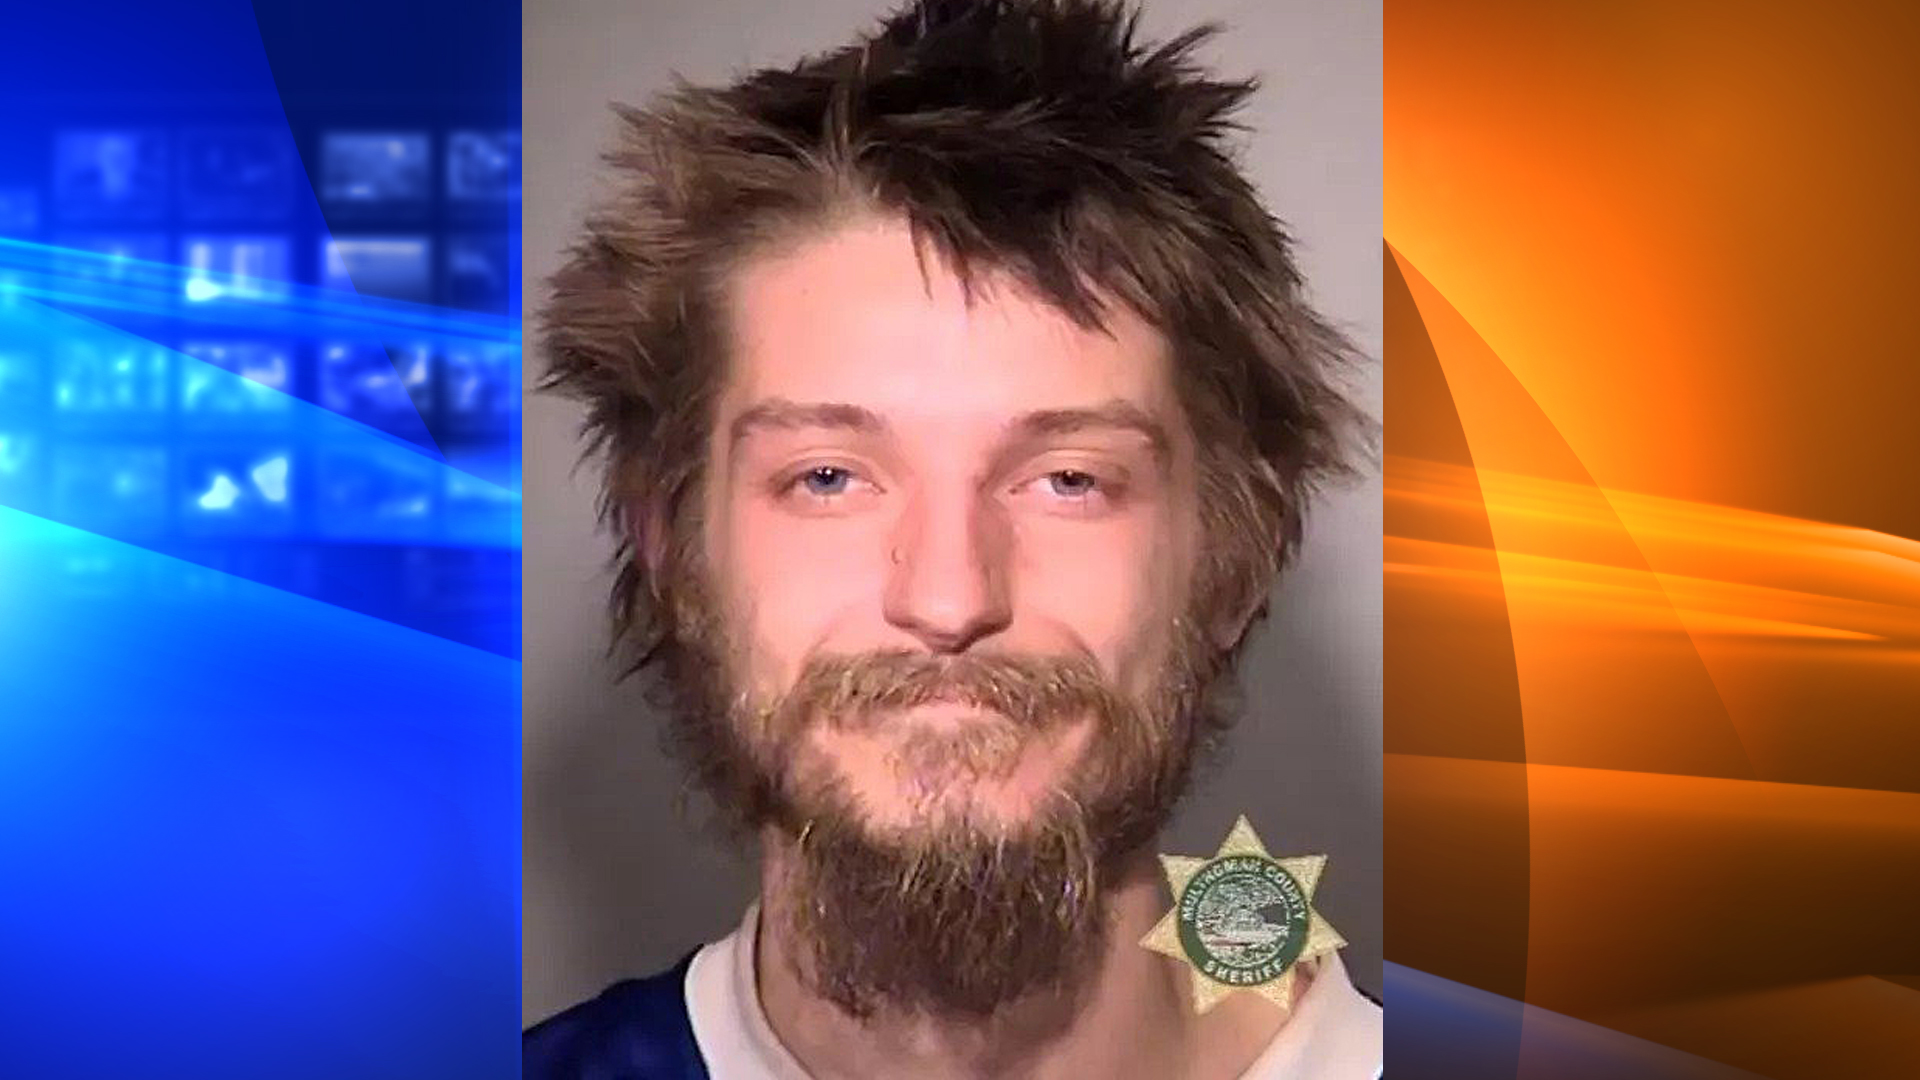 Portland police officers say a homeless man is being charged with a hate crime after yelling homophobic slurs at a group and assaulting a man Sunday night. (Credit: Portland PD)